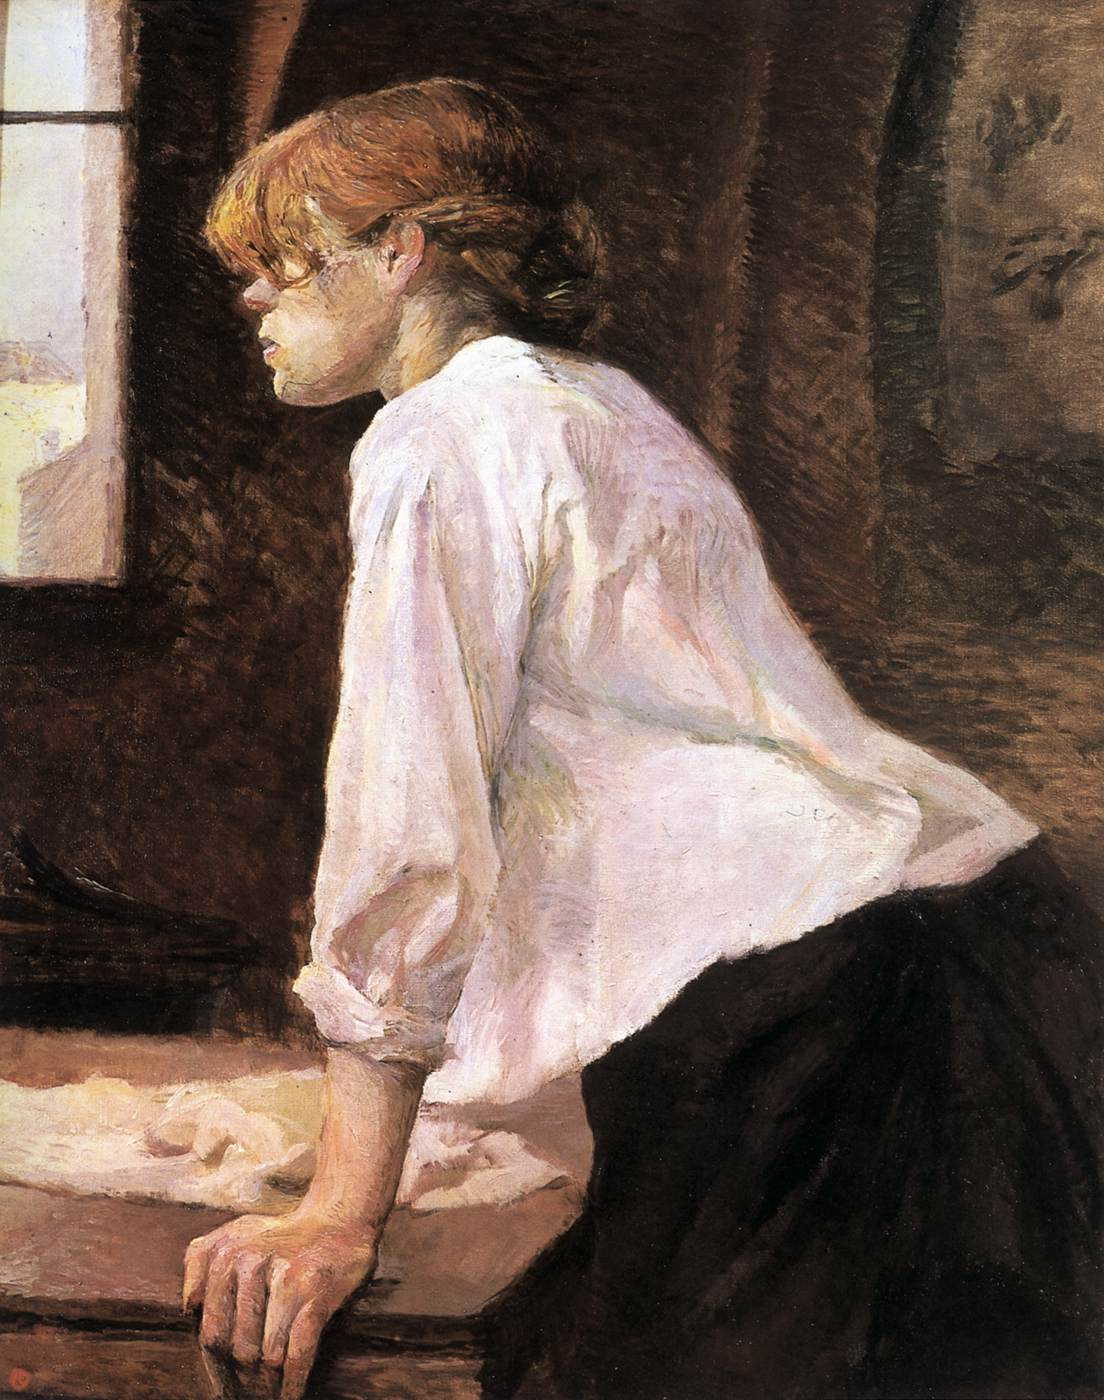 Get_lautrec_1889_the_laundress.jpg